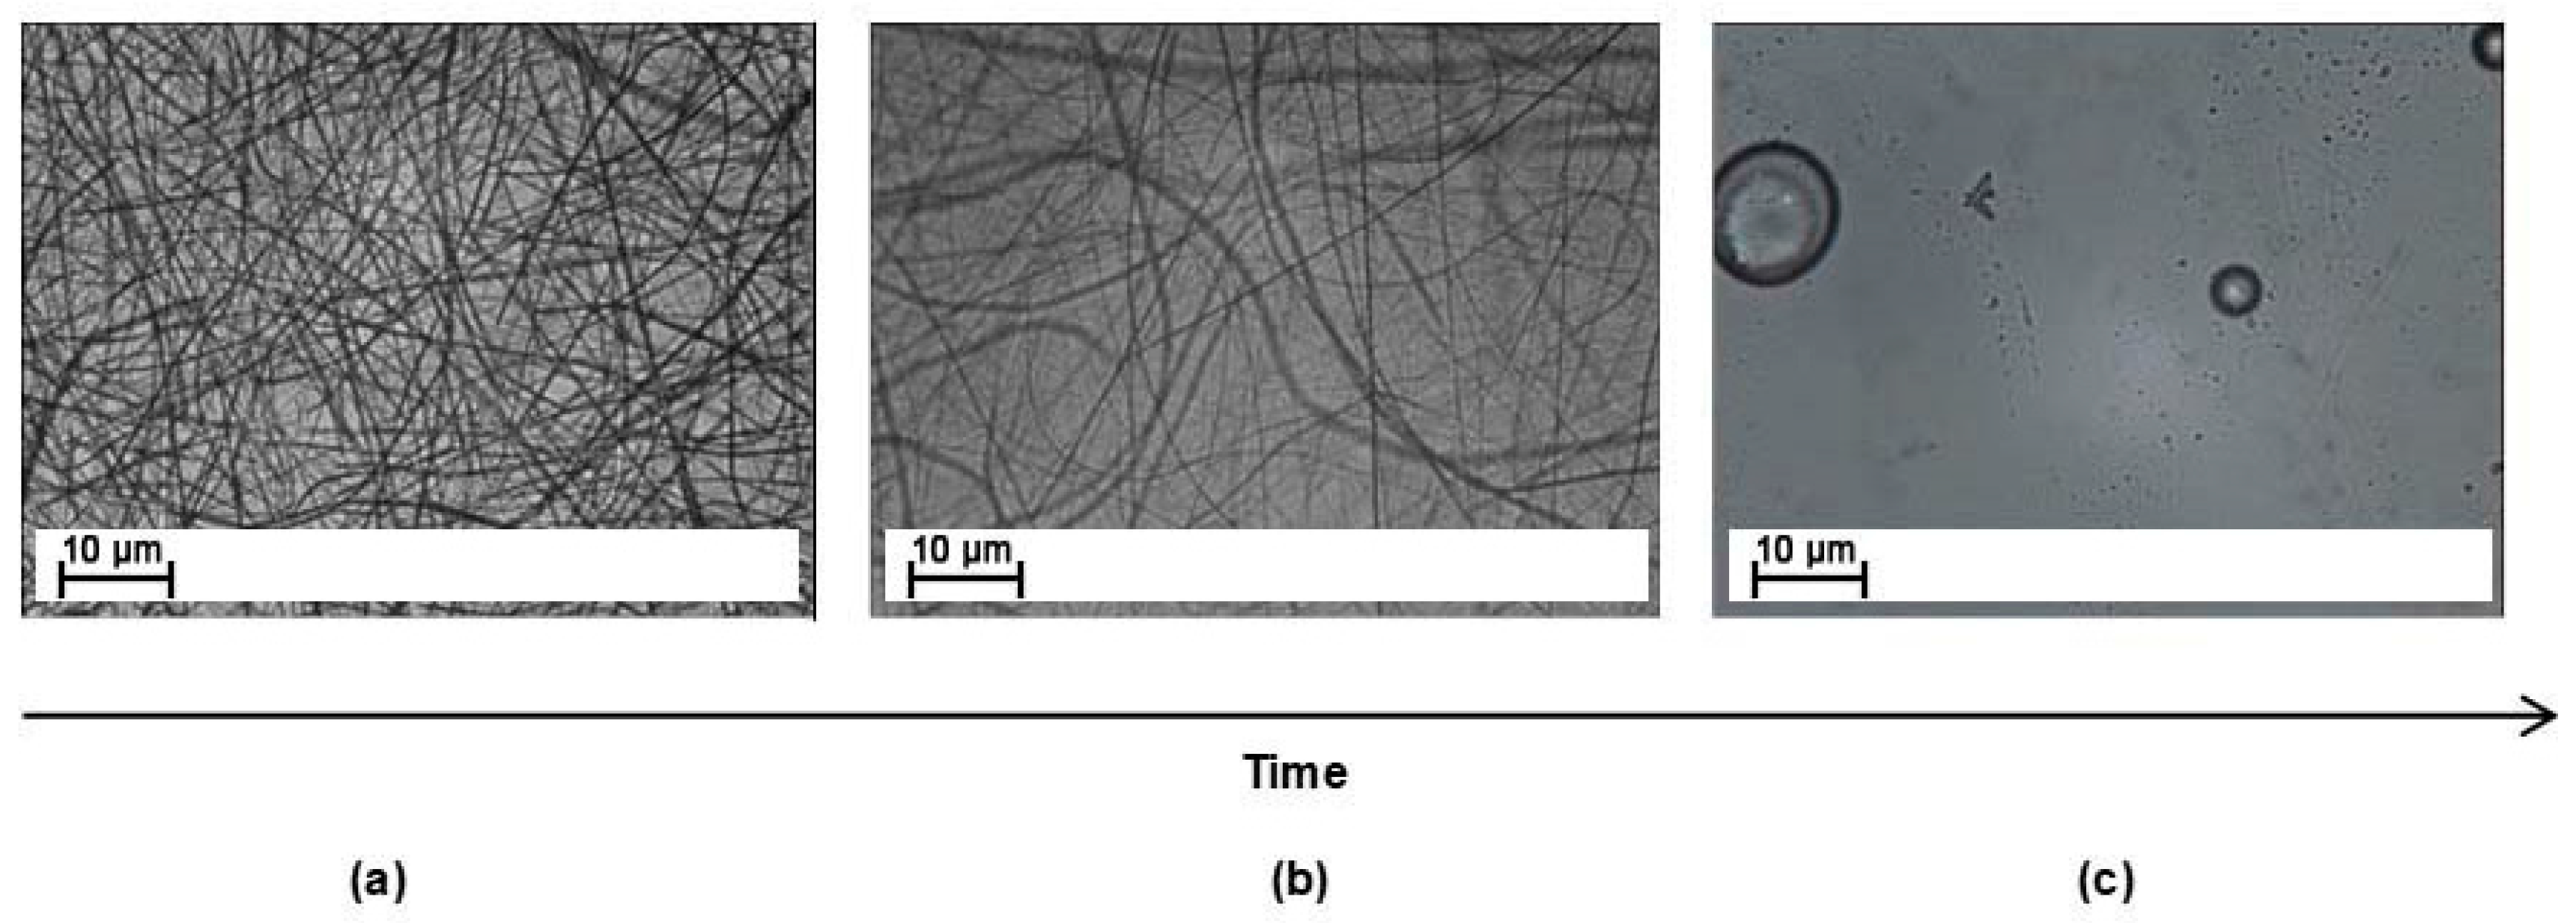 Materials Free Full Text Trifunctional Epoxy Resin Composites Modified By Soluble Electrospun Veils Effect On The Viscoelastic And Morphological Properties Html